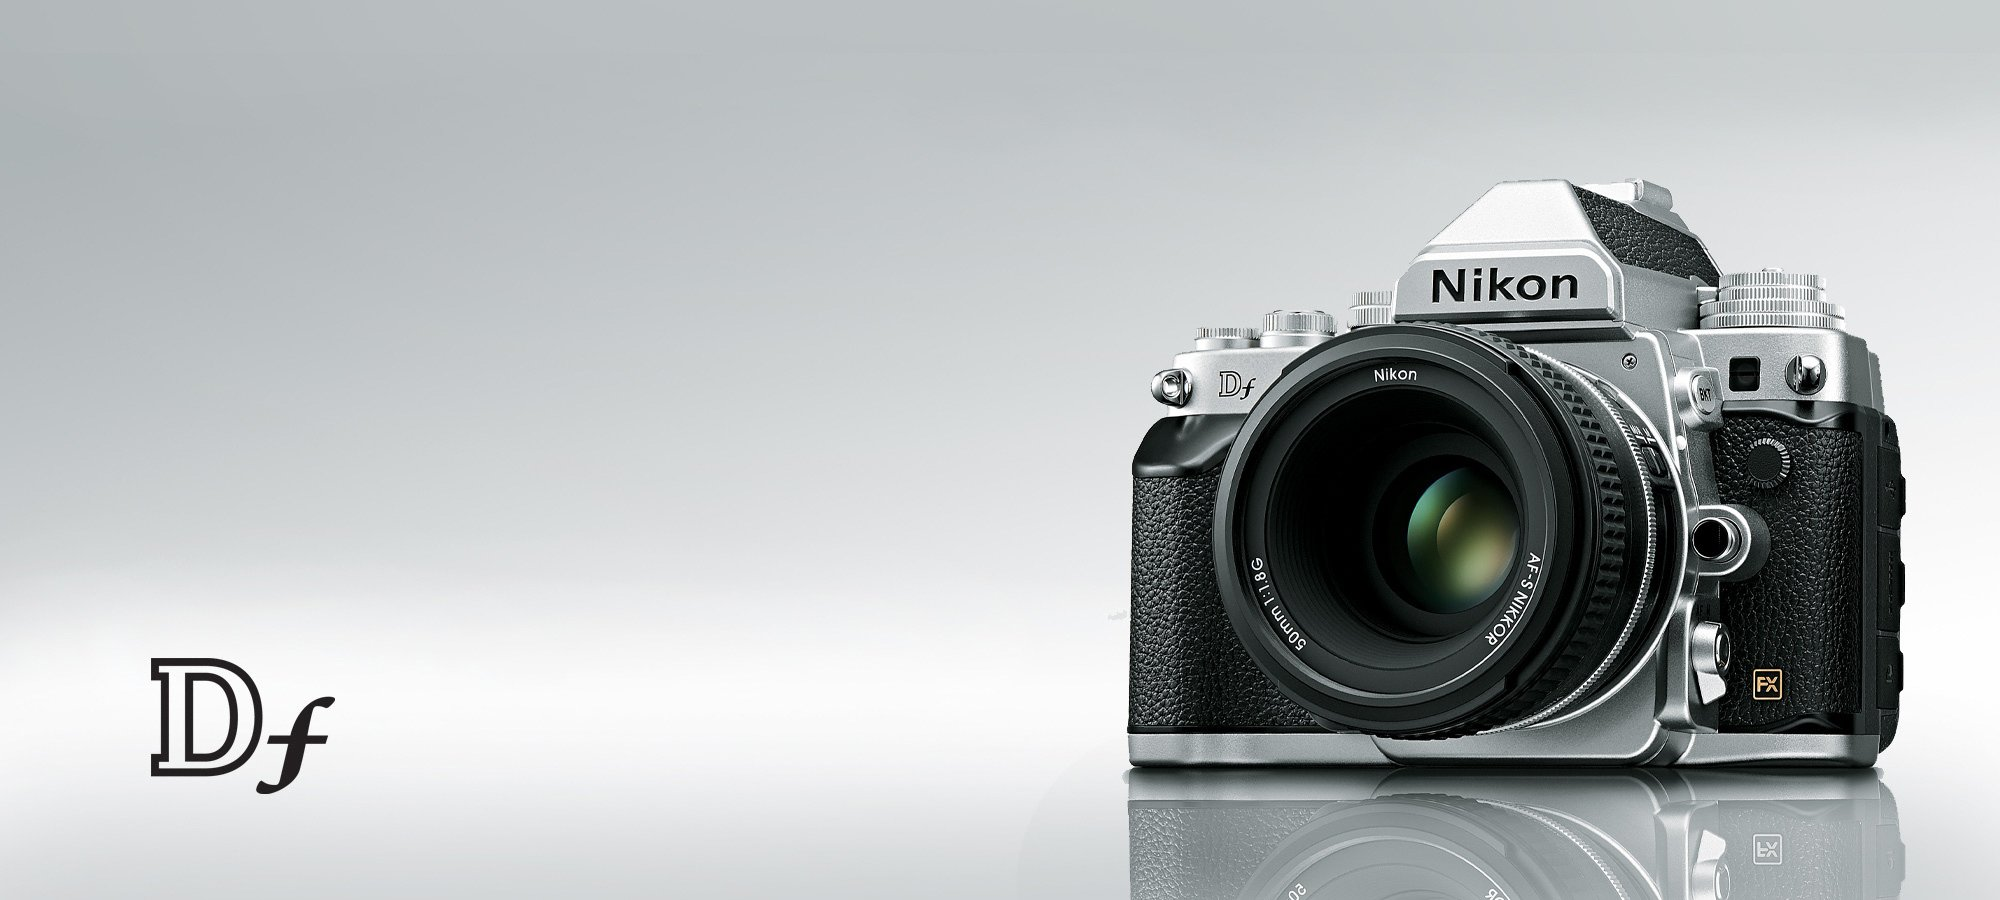 Nikon UK: Digital Cameras, Lens & Photography Accessories